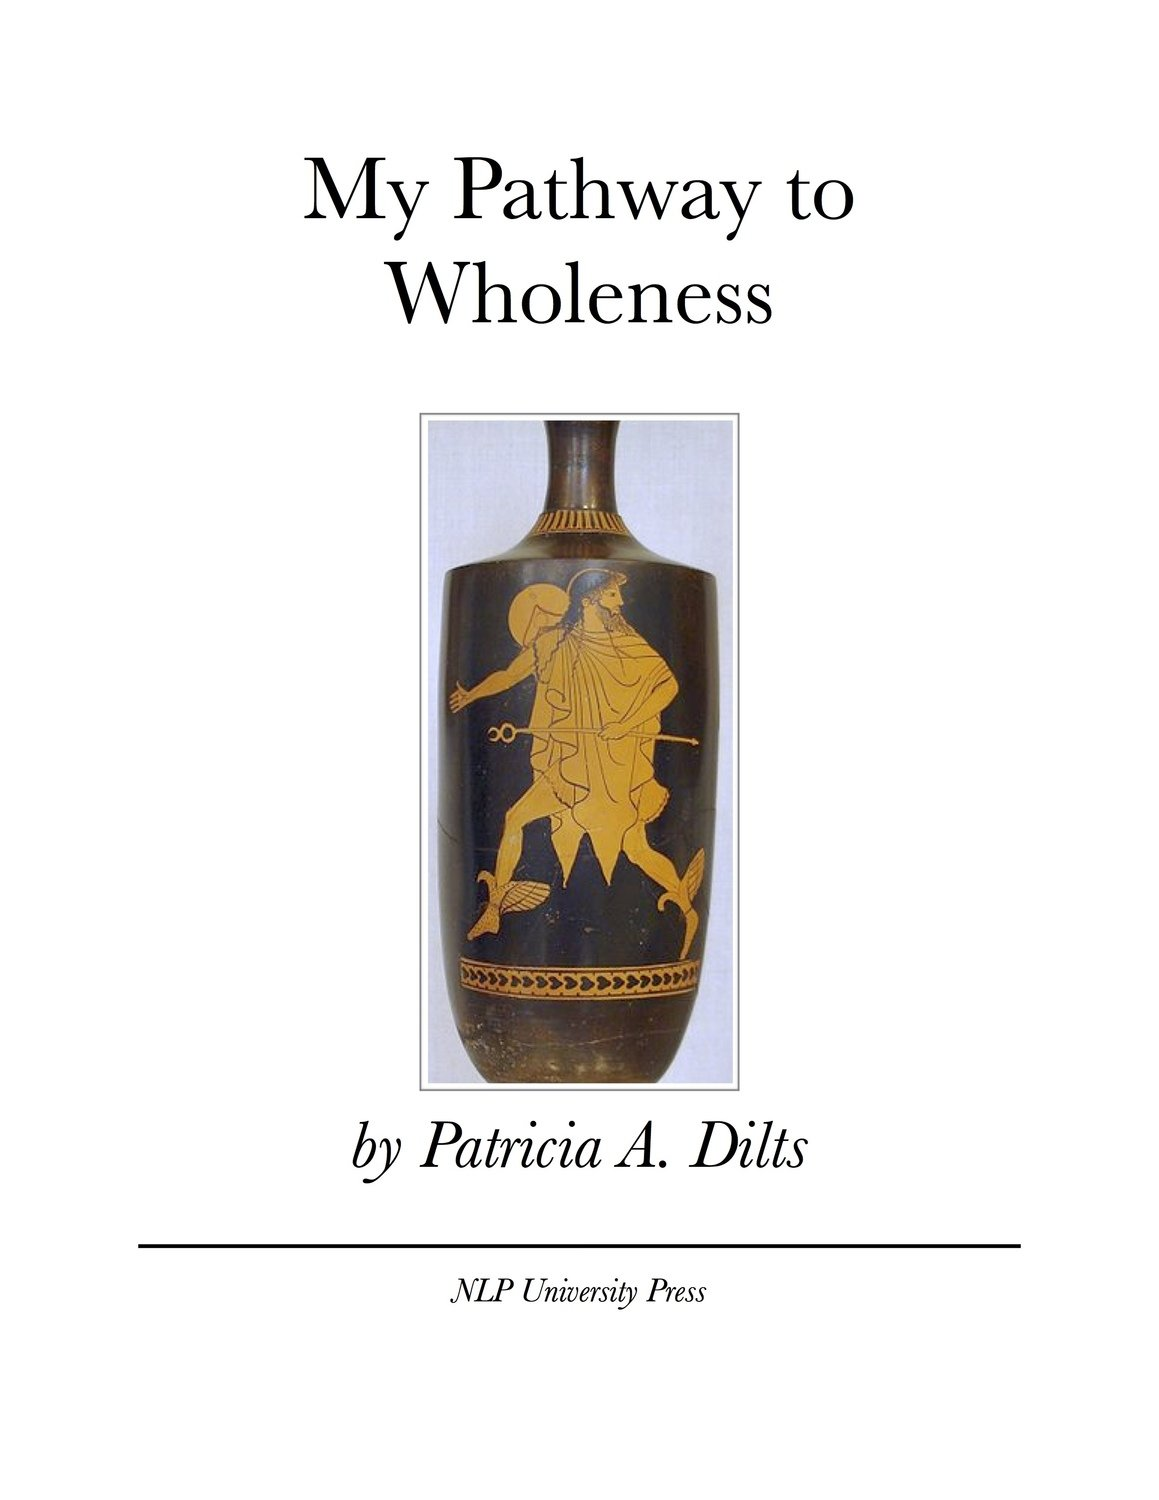 My Pathway to Wholeness by Patricia A. Dilts [Booklet]